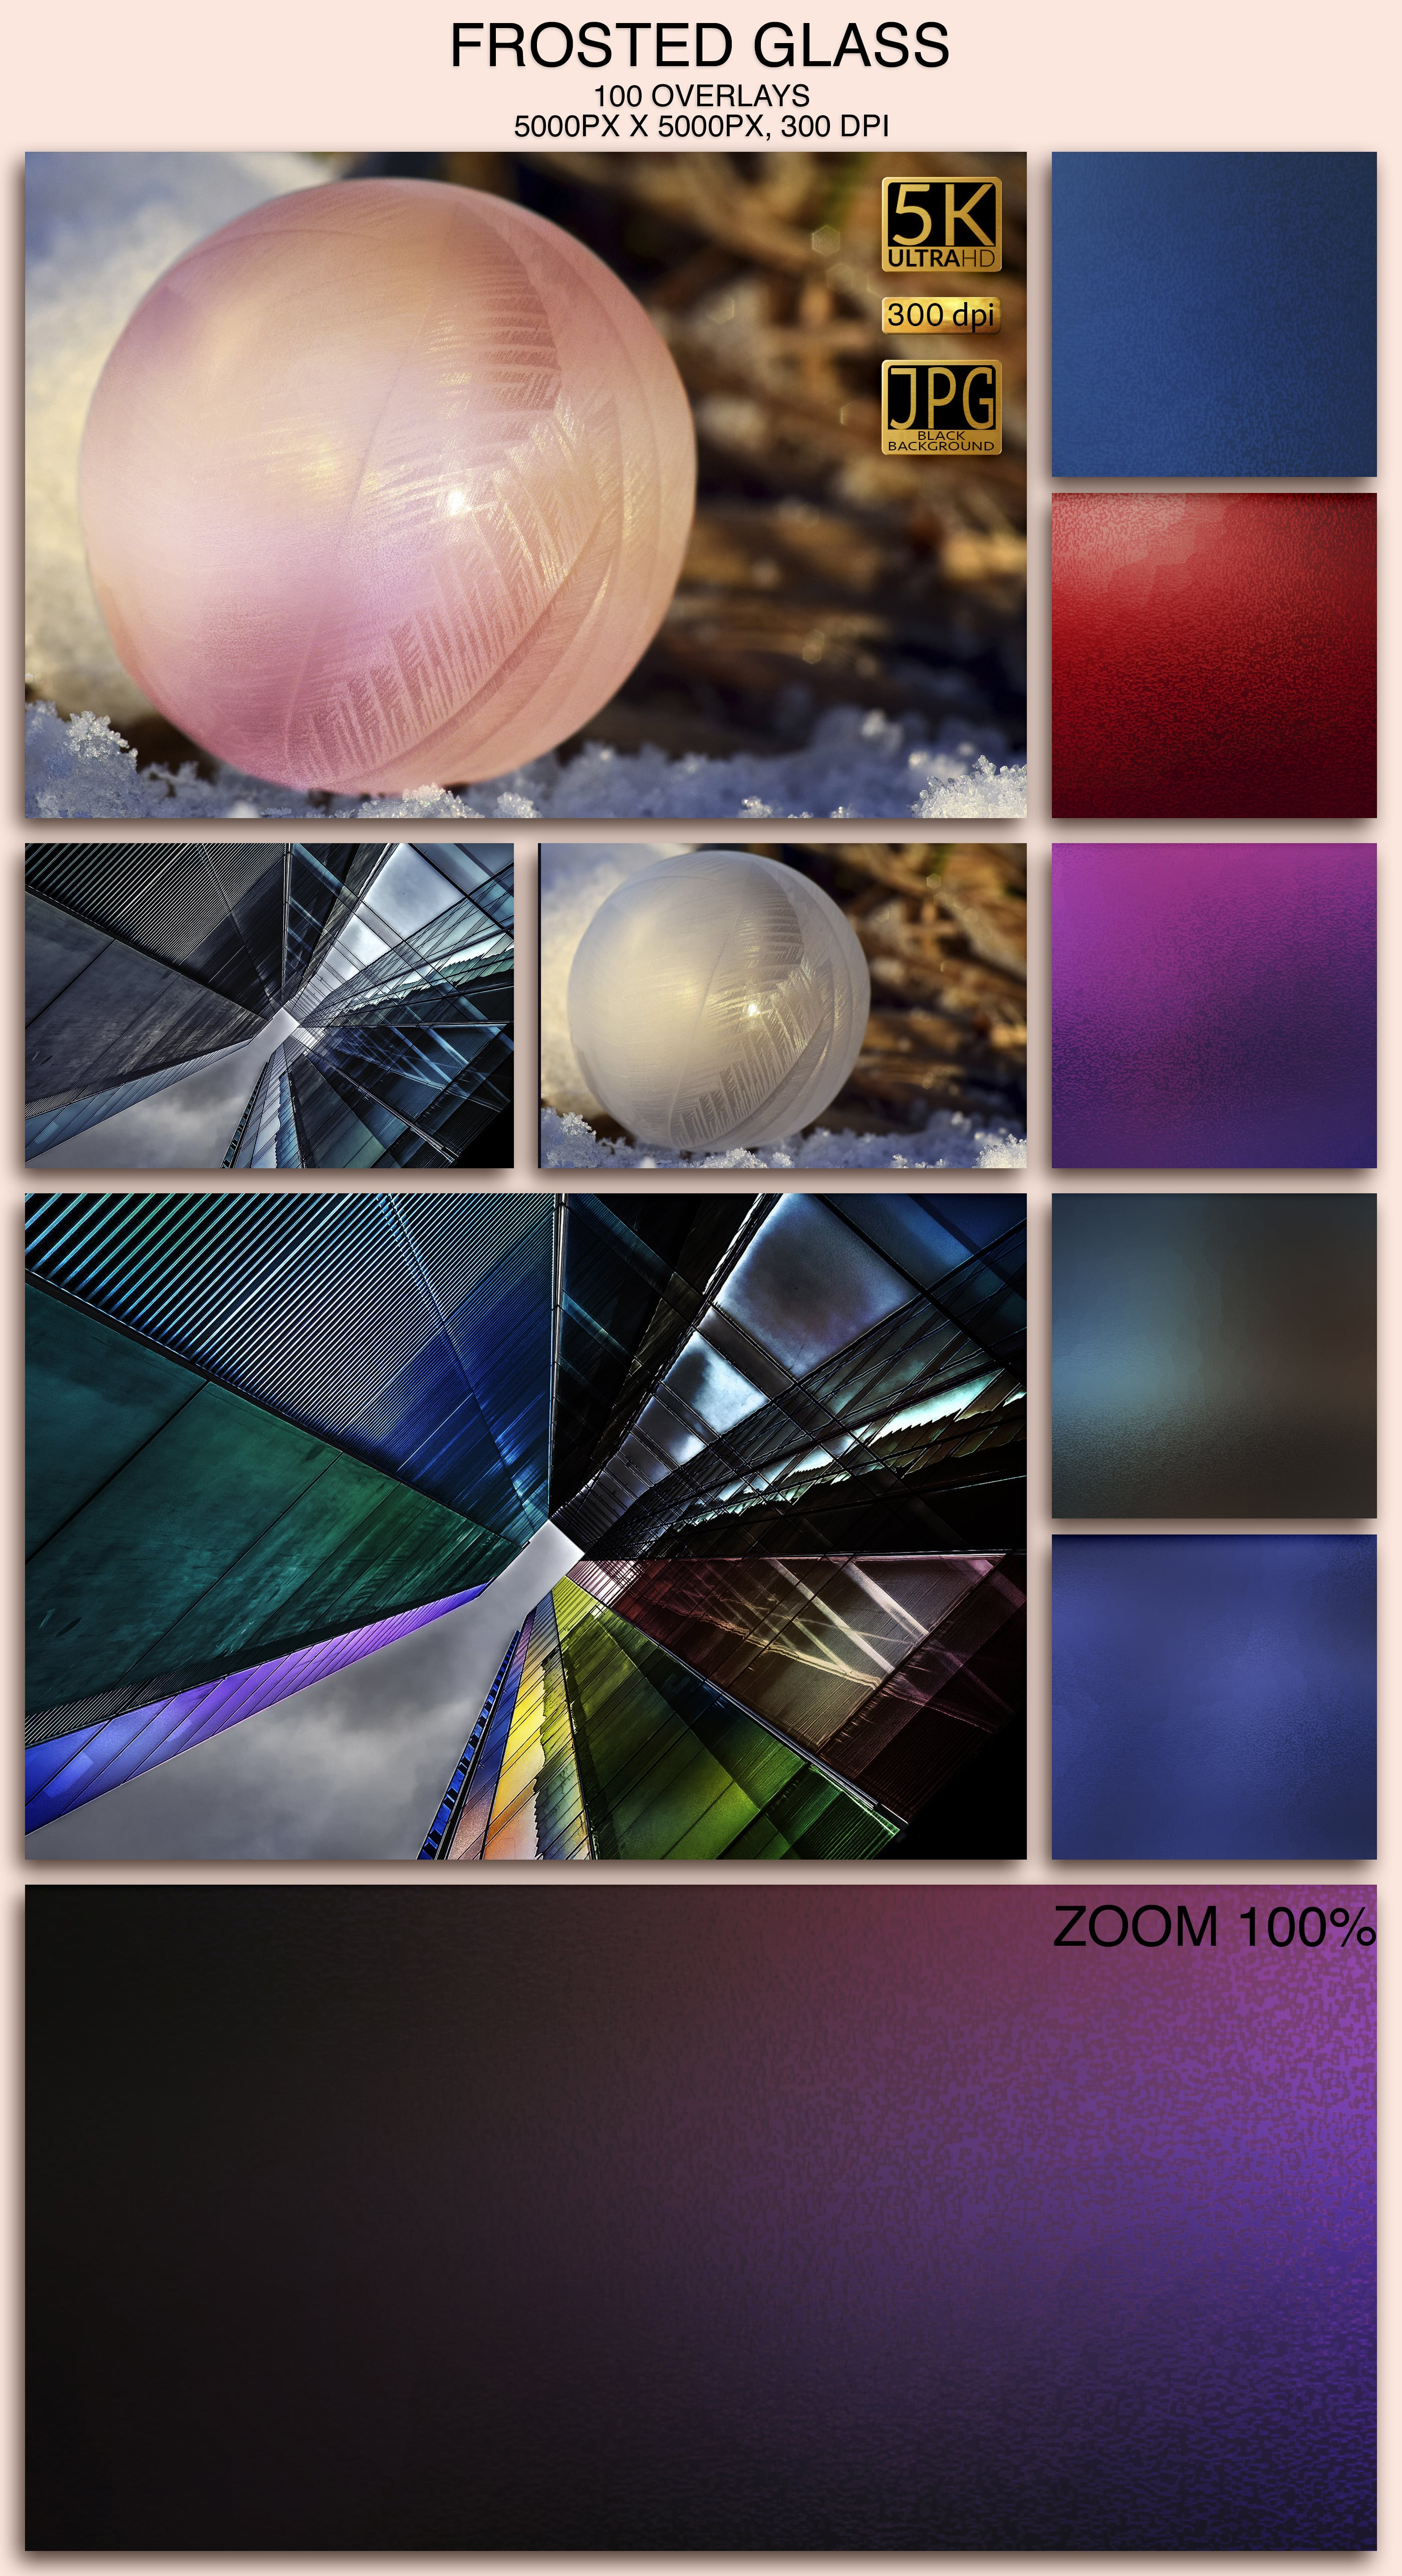 2006 Overlays Photoshop Bundle - Frosted Glass Preview